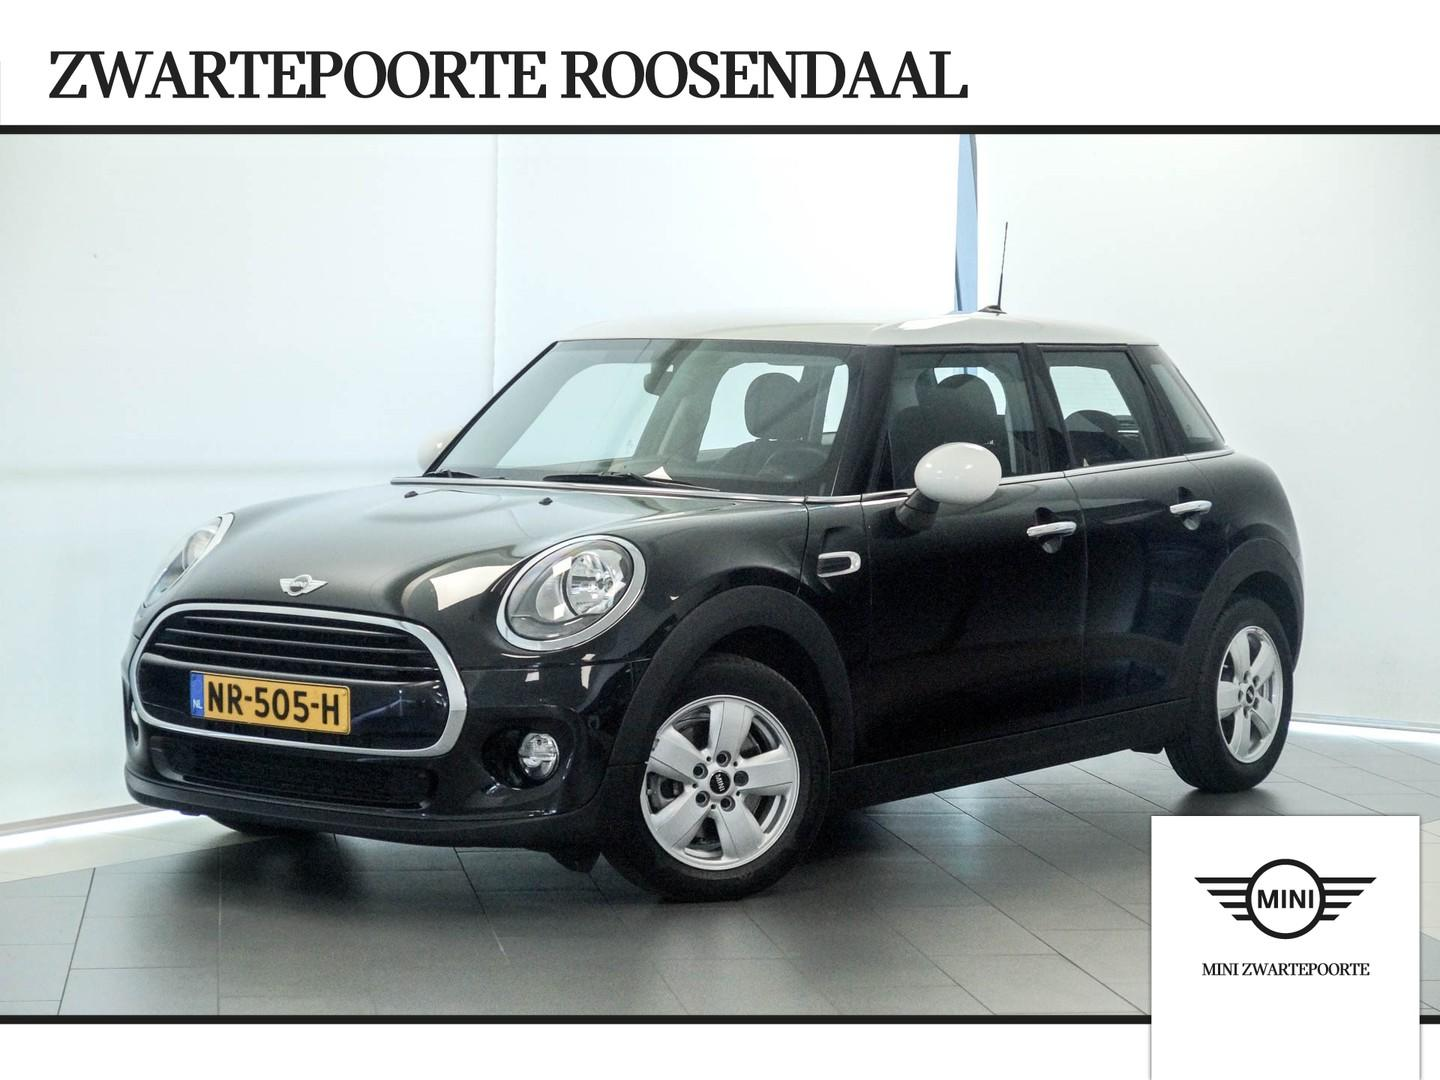 Mini 5 drs 1.5 cooper business - navigatie - airco